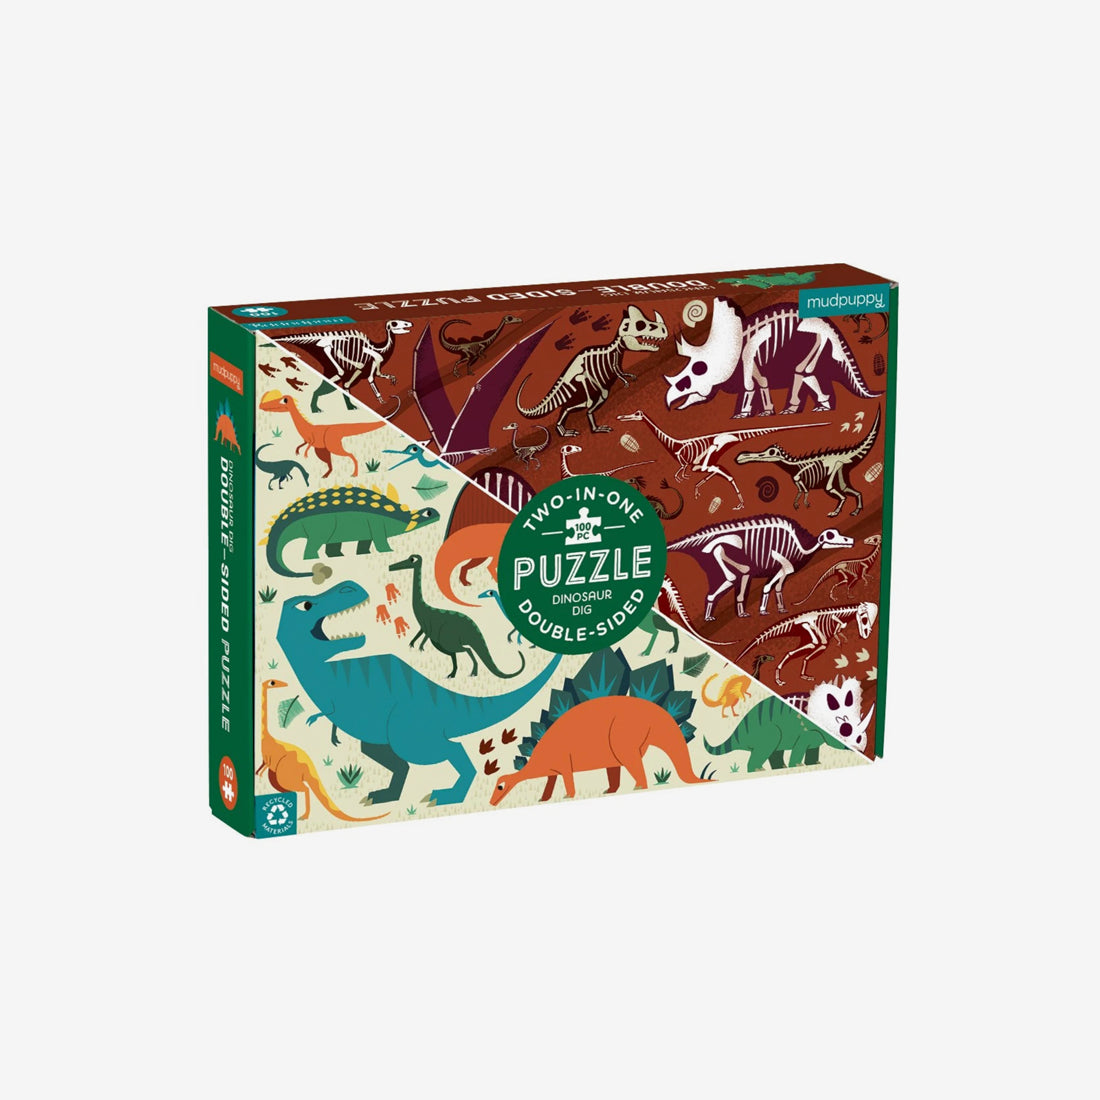 100-Piece Double-Sided Puzzle - Dinosaur Dig